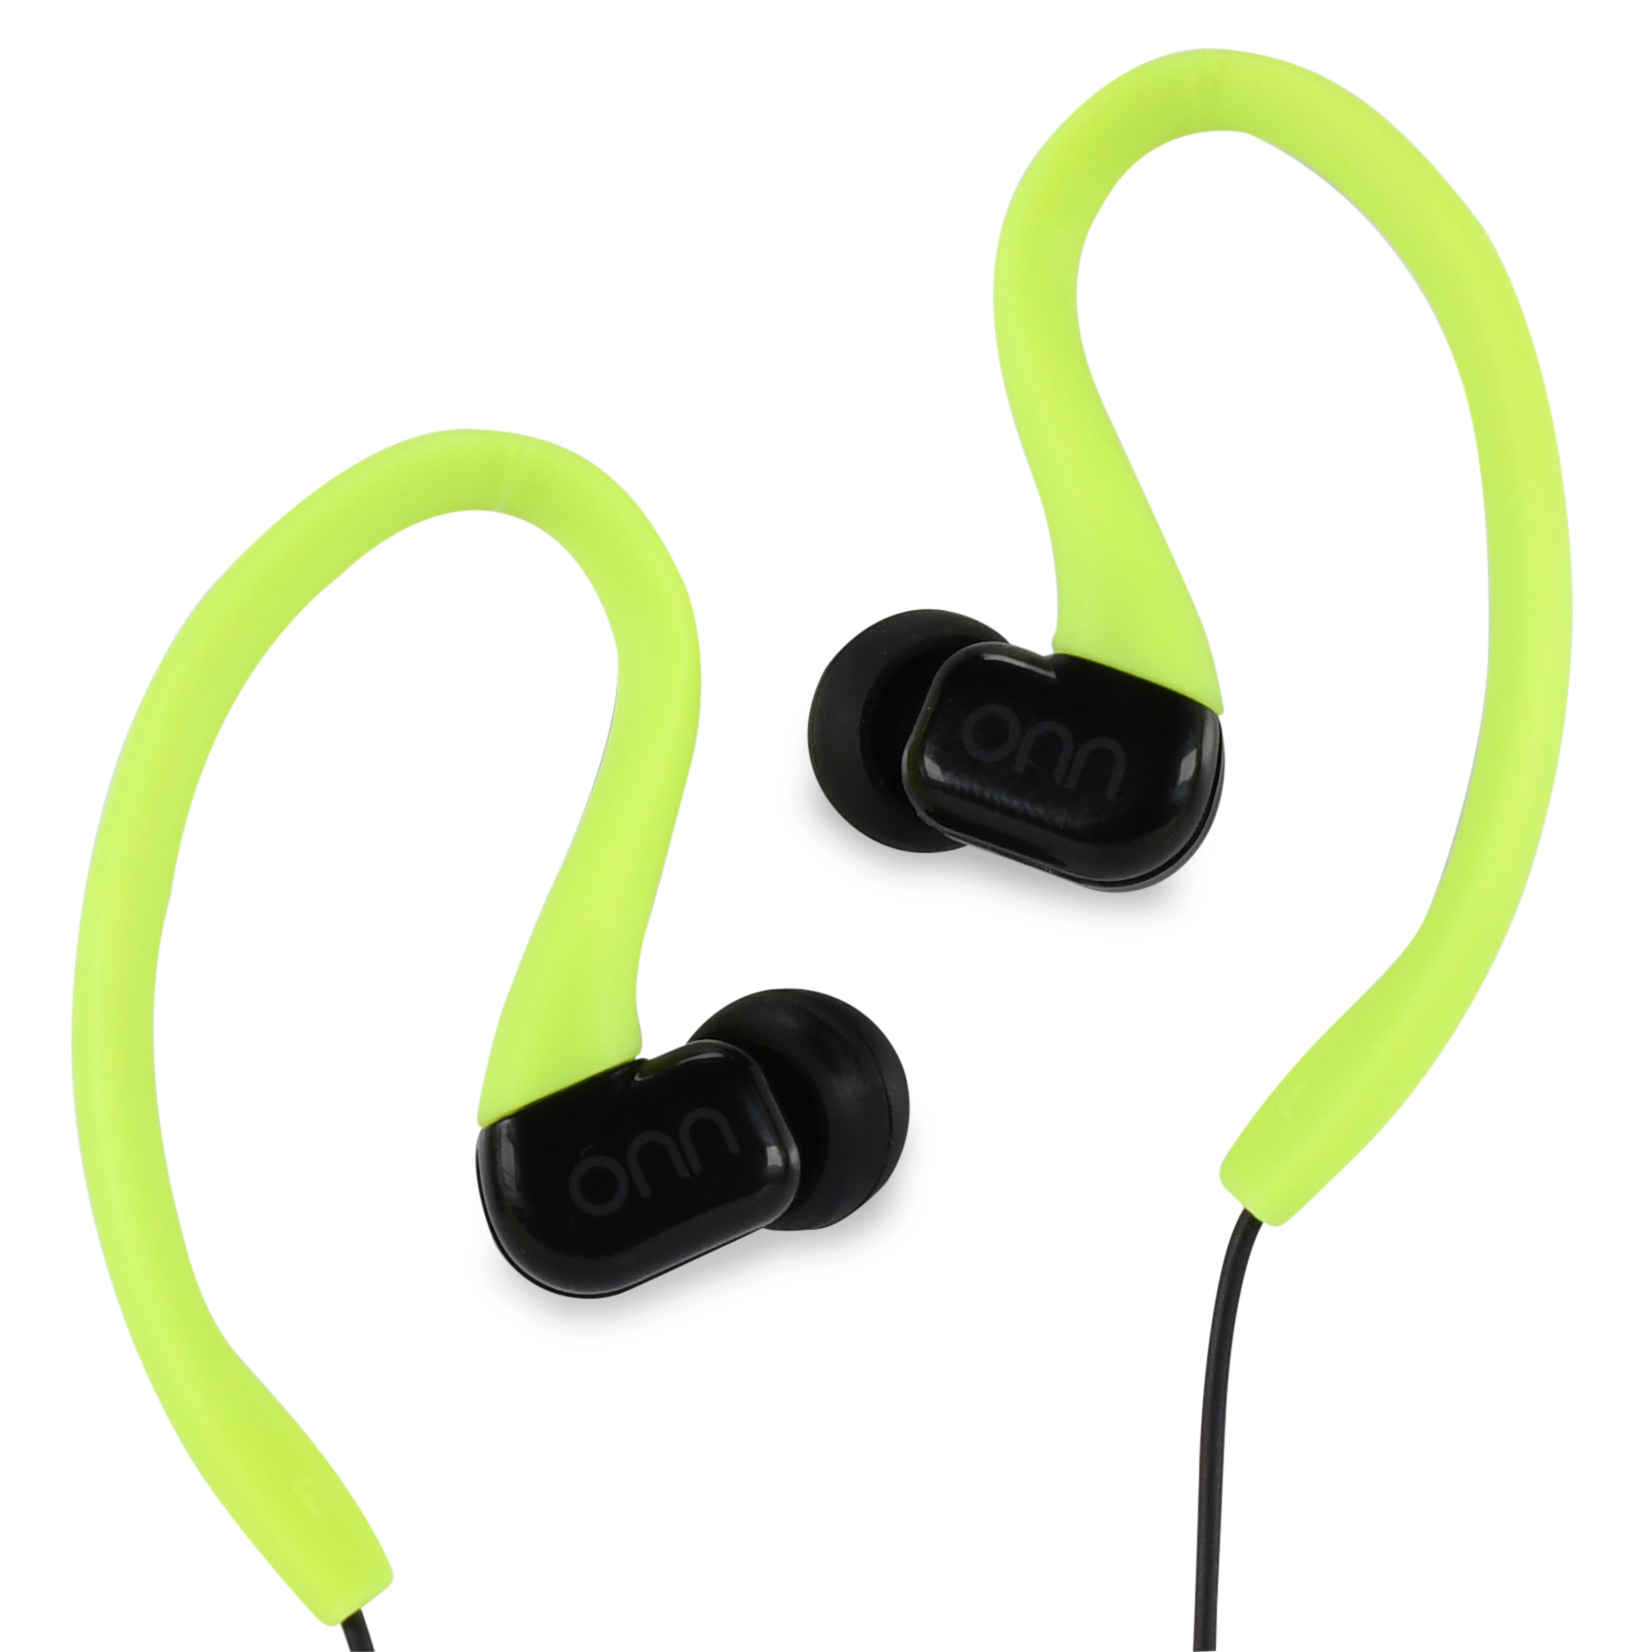 Onn by Walmart Ear Clips Headphones, Black